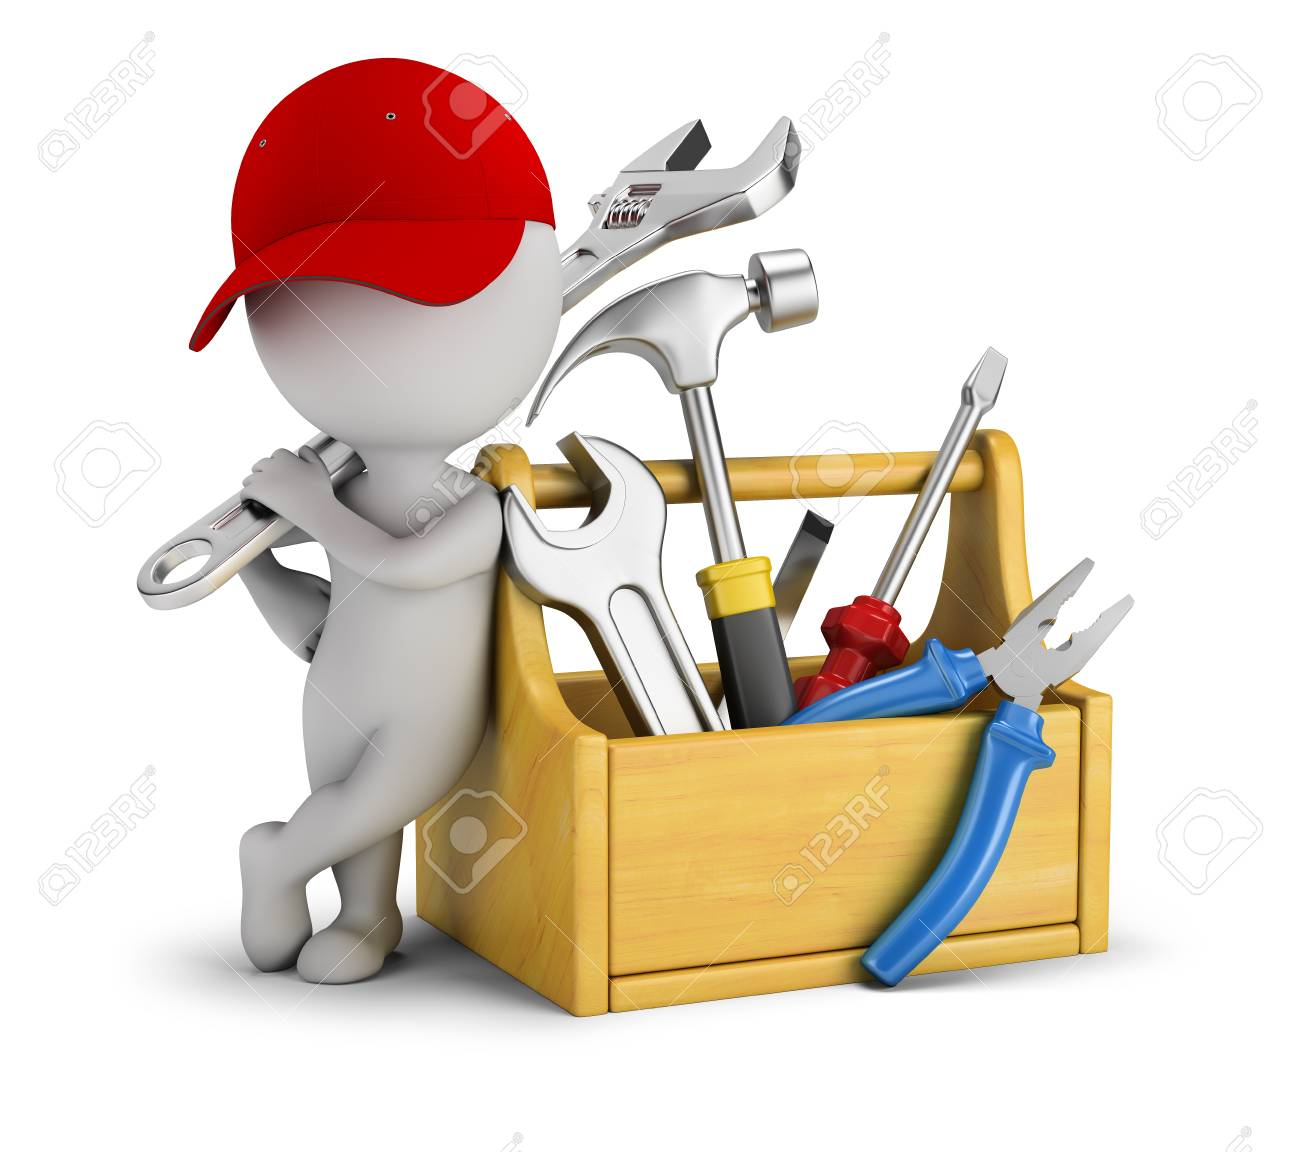 3d small people - repairman near the toolbox. 3d image. White background. - 94928555